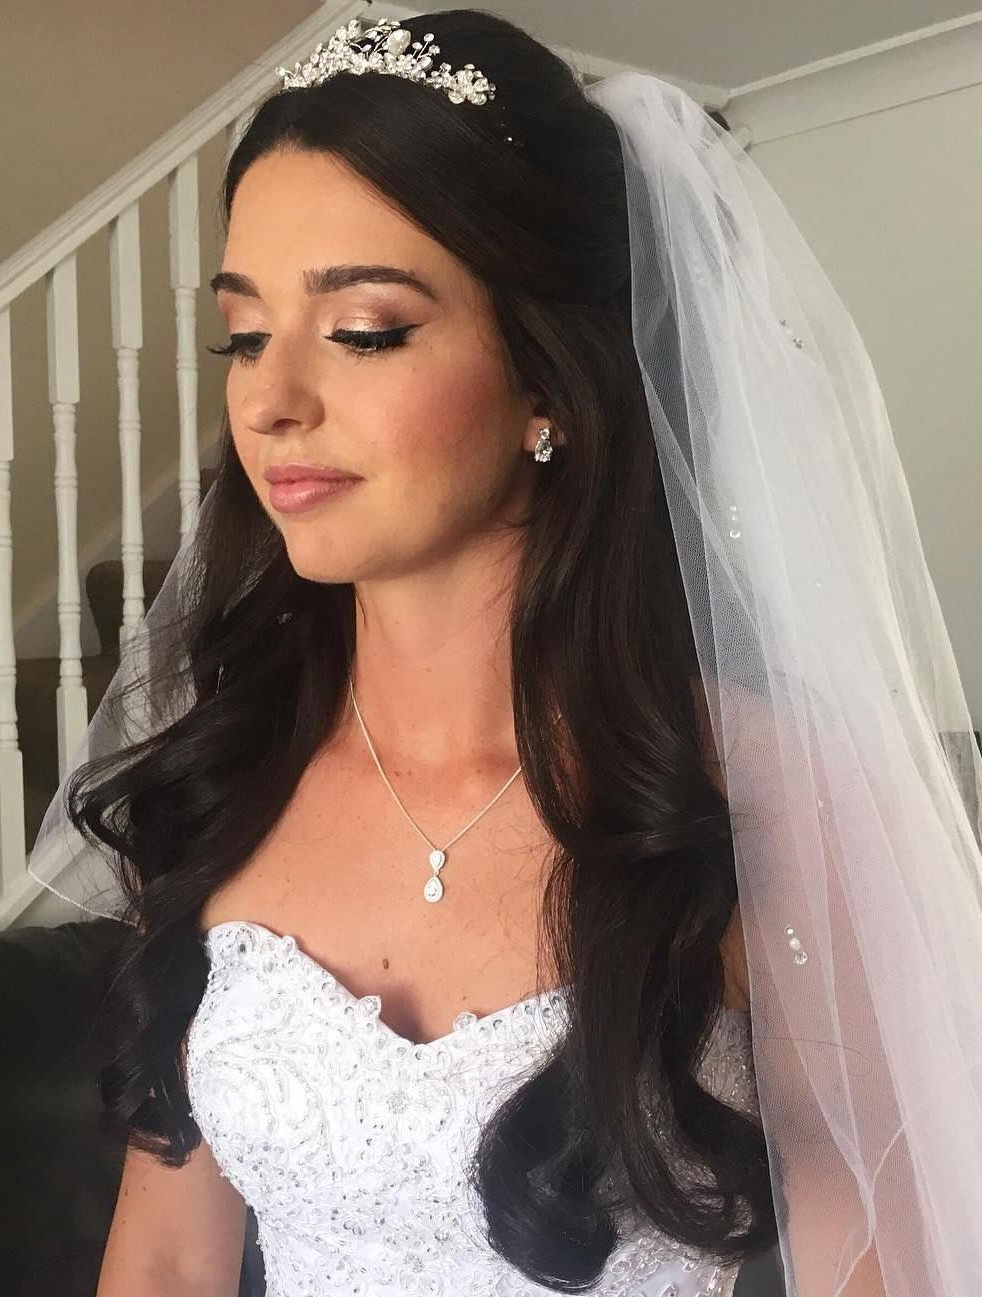 Half Up Half Down Wedding Hairstyles – 50 Stylish Ideas For Brides In Favorite Half Up Wedding Hairstyles With Jeweled Clip (View 12 of 20)